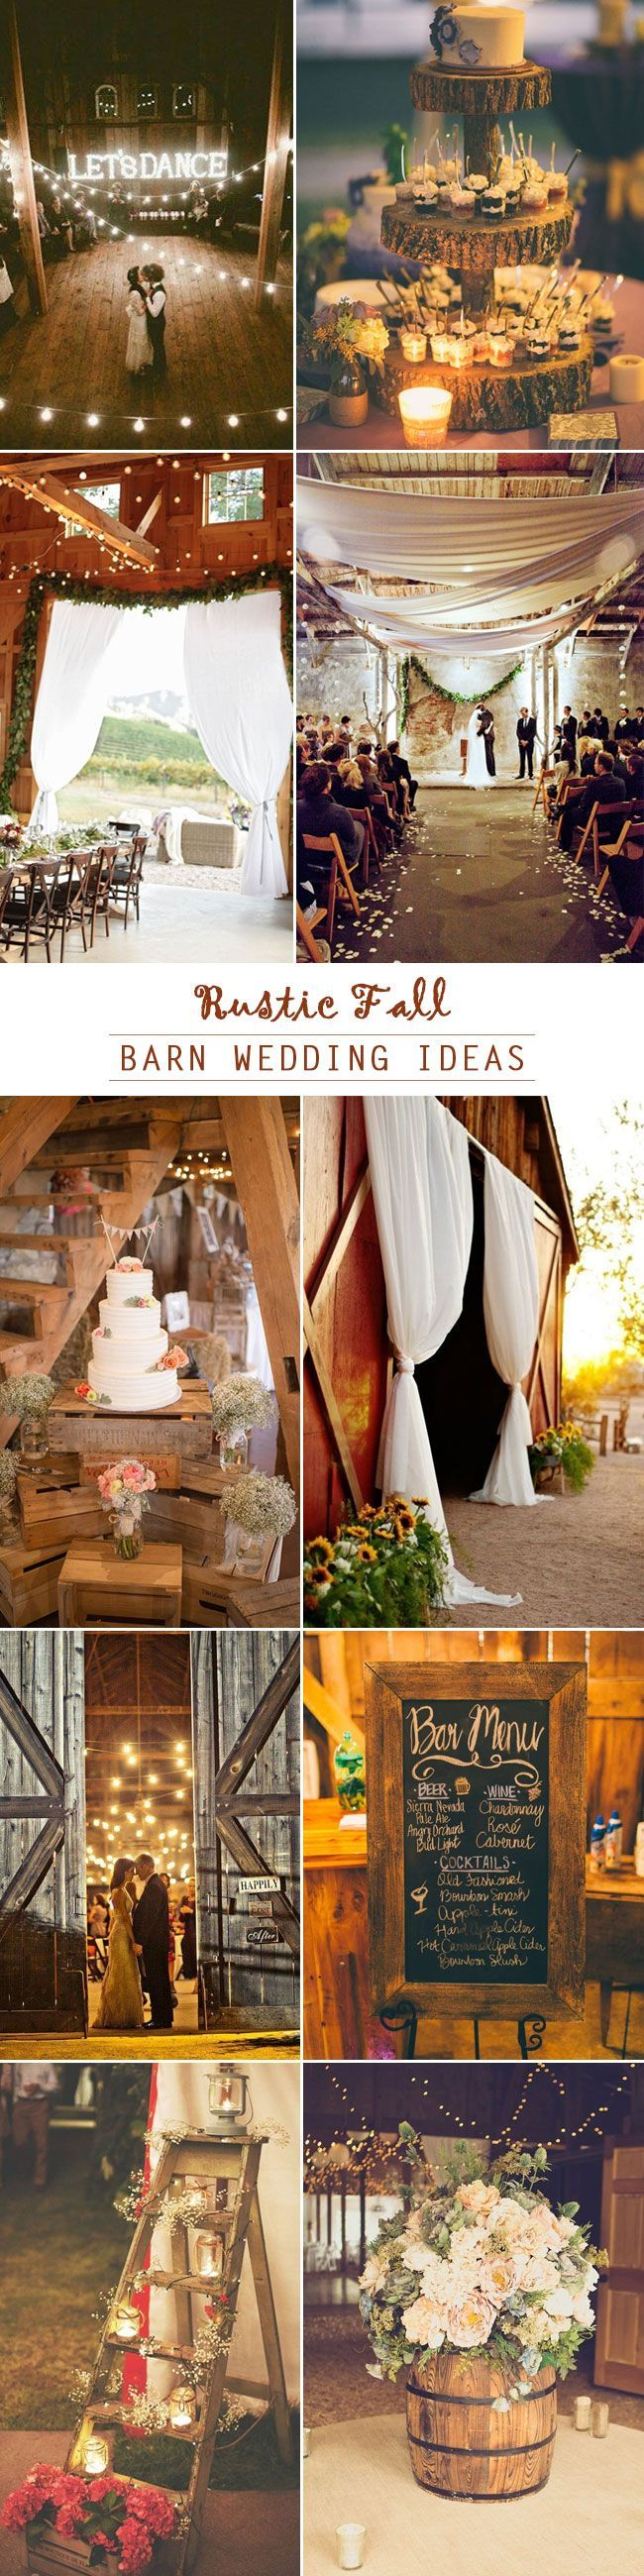 Floral is the most romantic and commonest way to decorate your wedding altar. No matter the theme, the place, floral arches can always give your space added color and structure. With flowers, fabrics, and various bu...